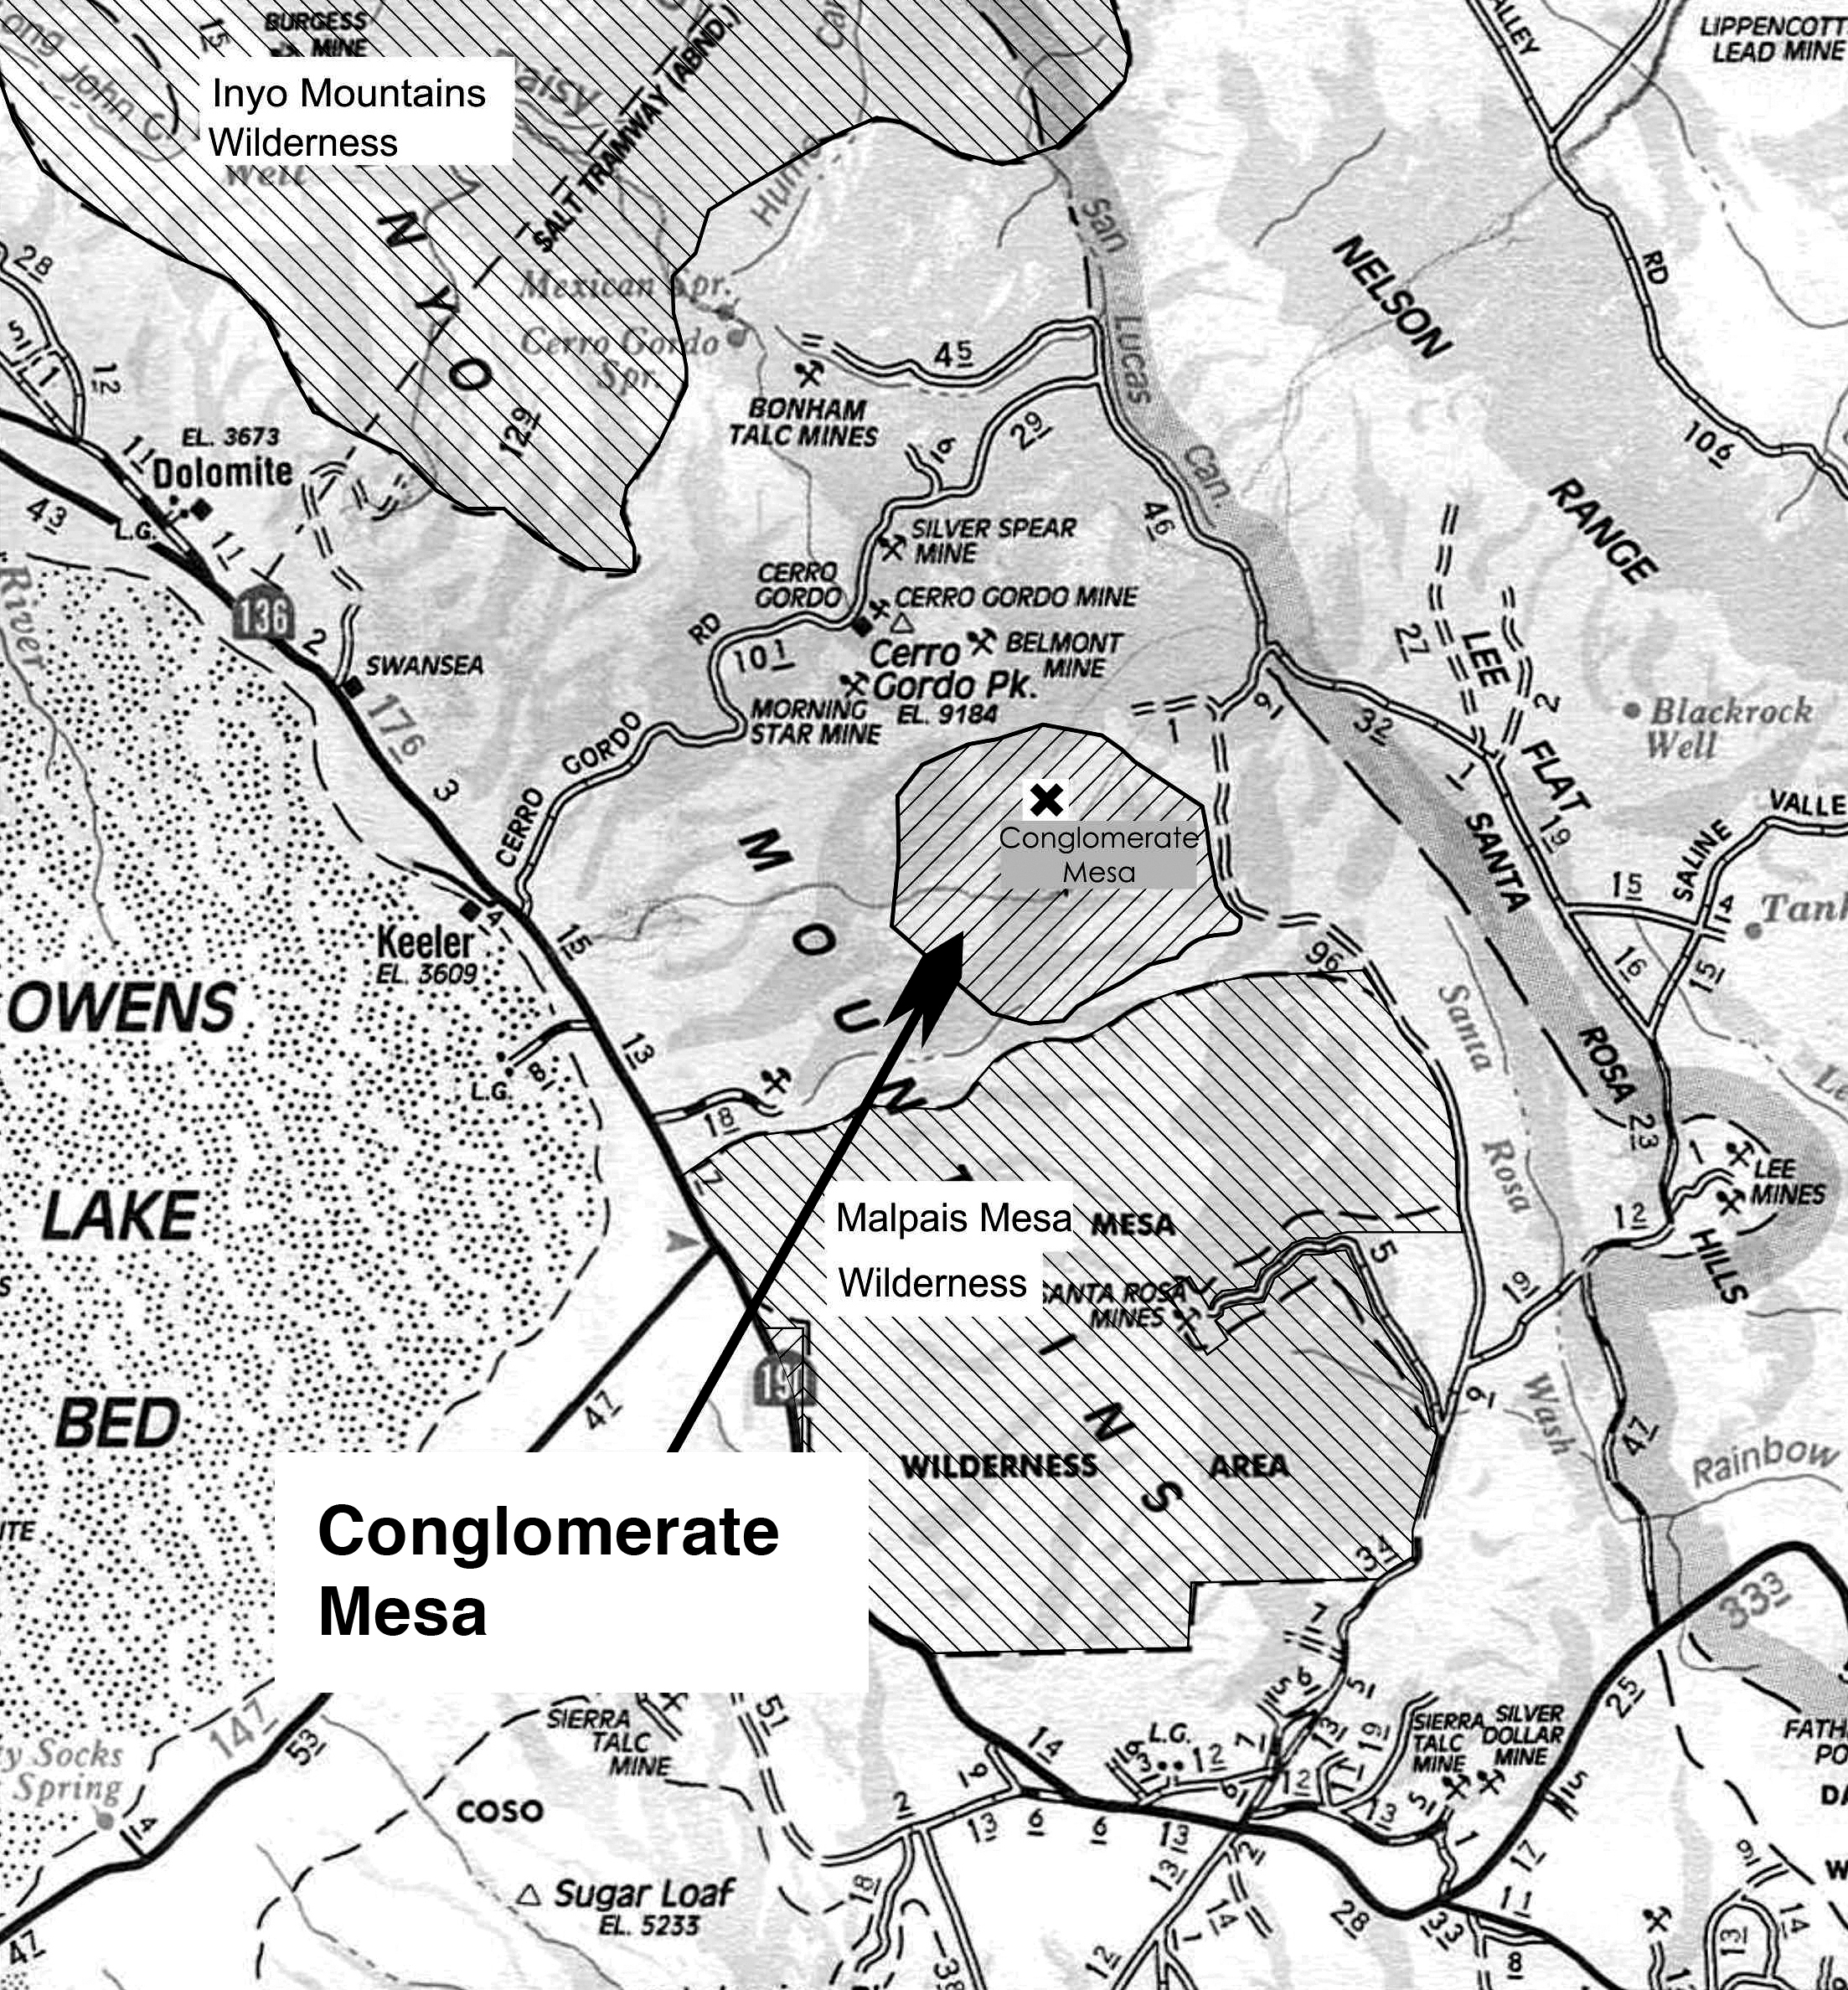 Conglomerate Mesa is east from Olancha, CA, and on the east side of Owens Lake.